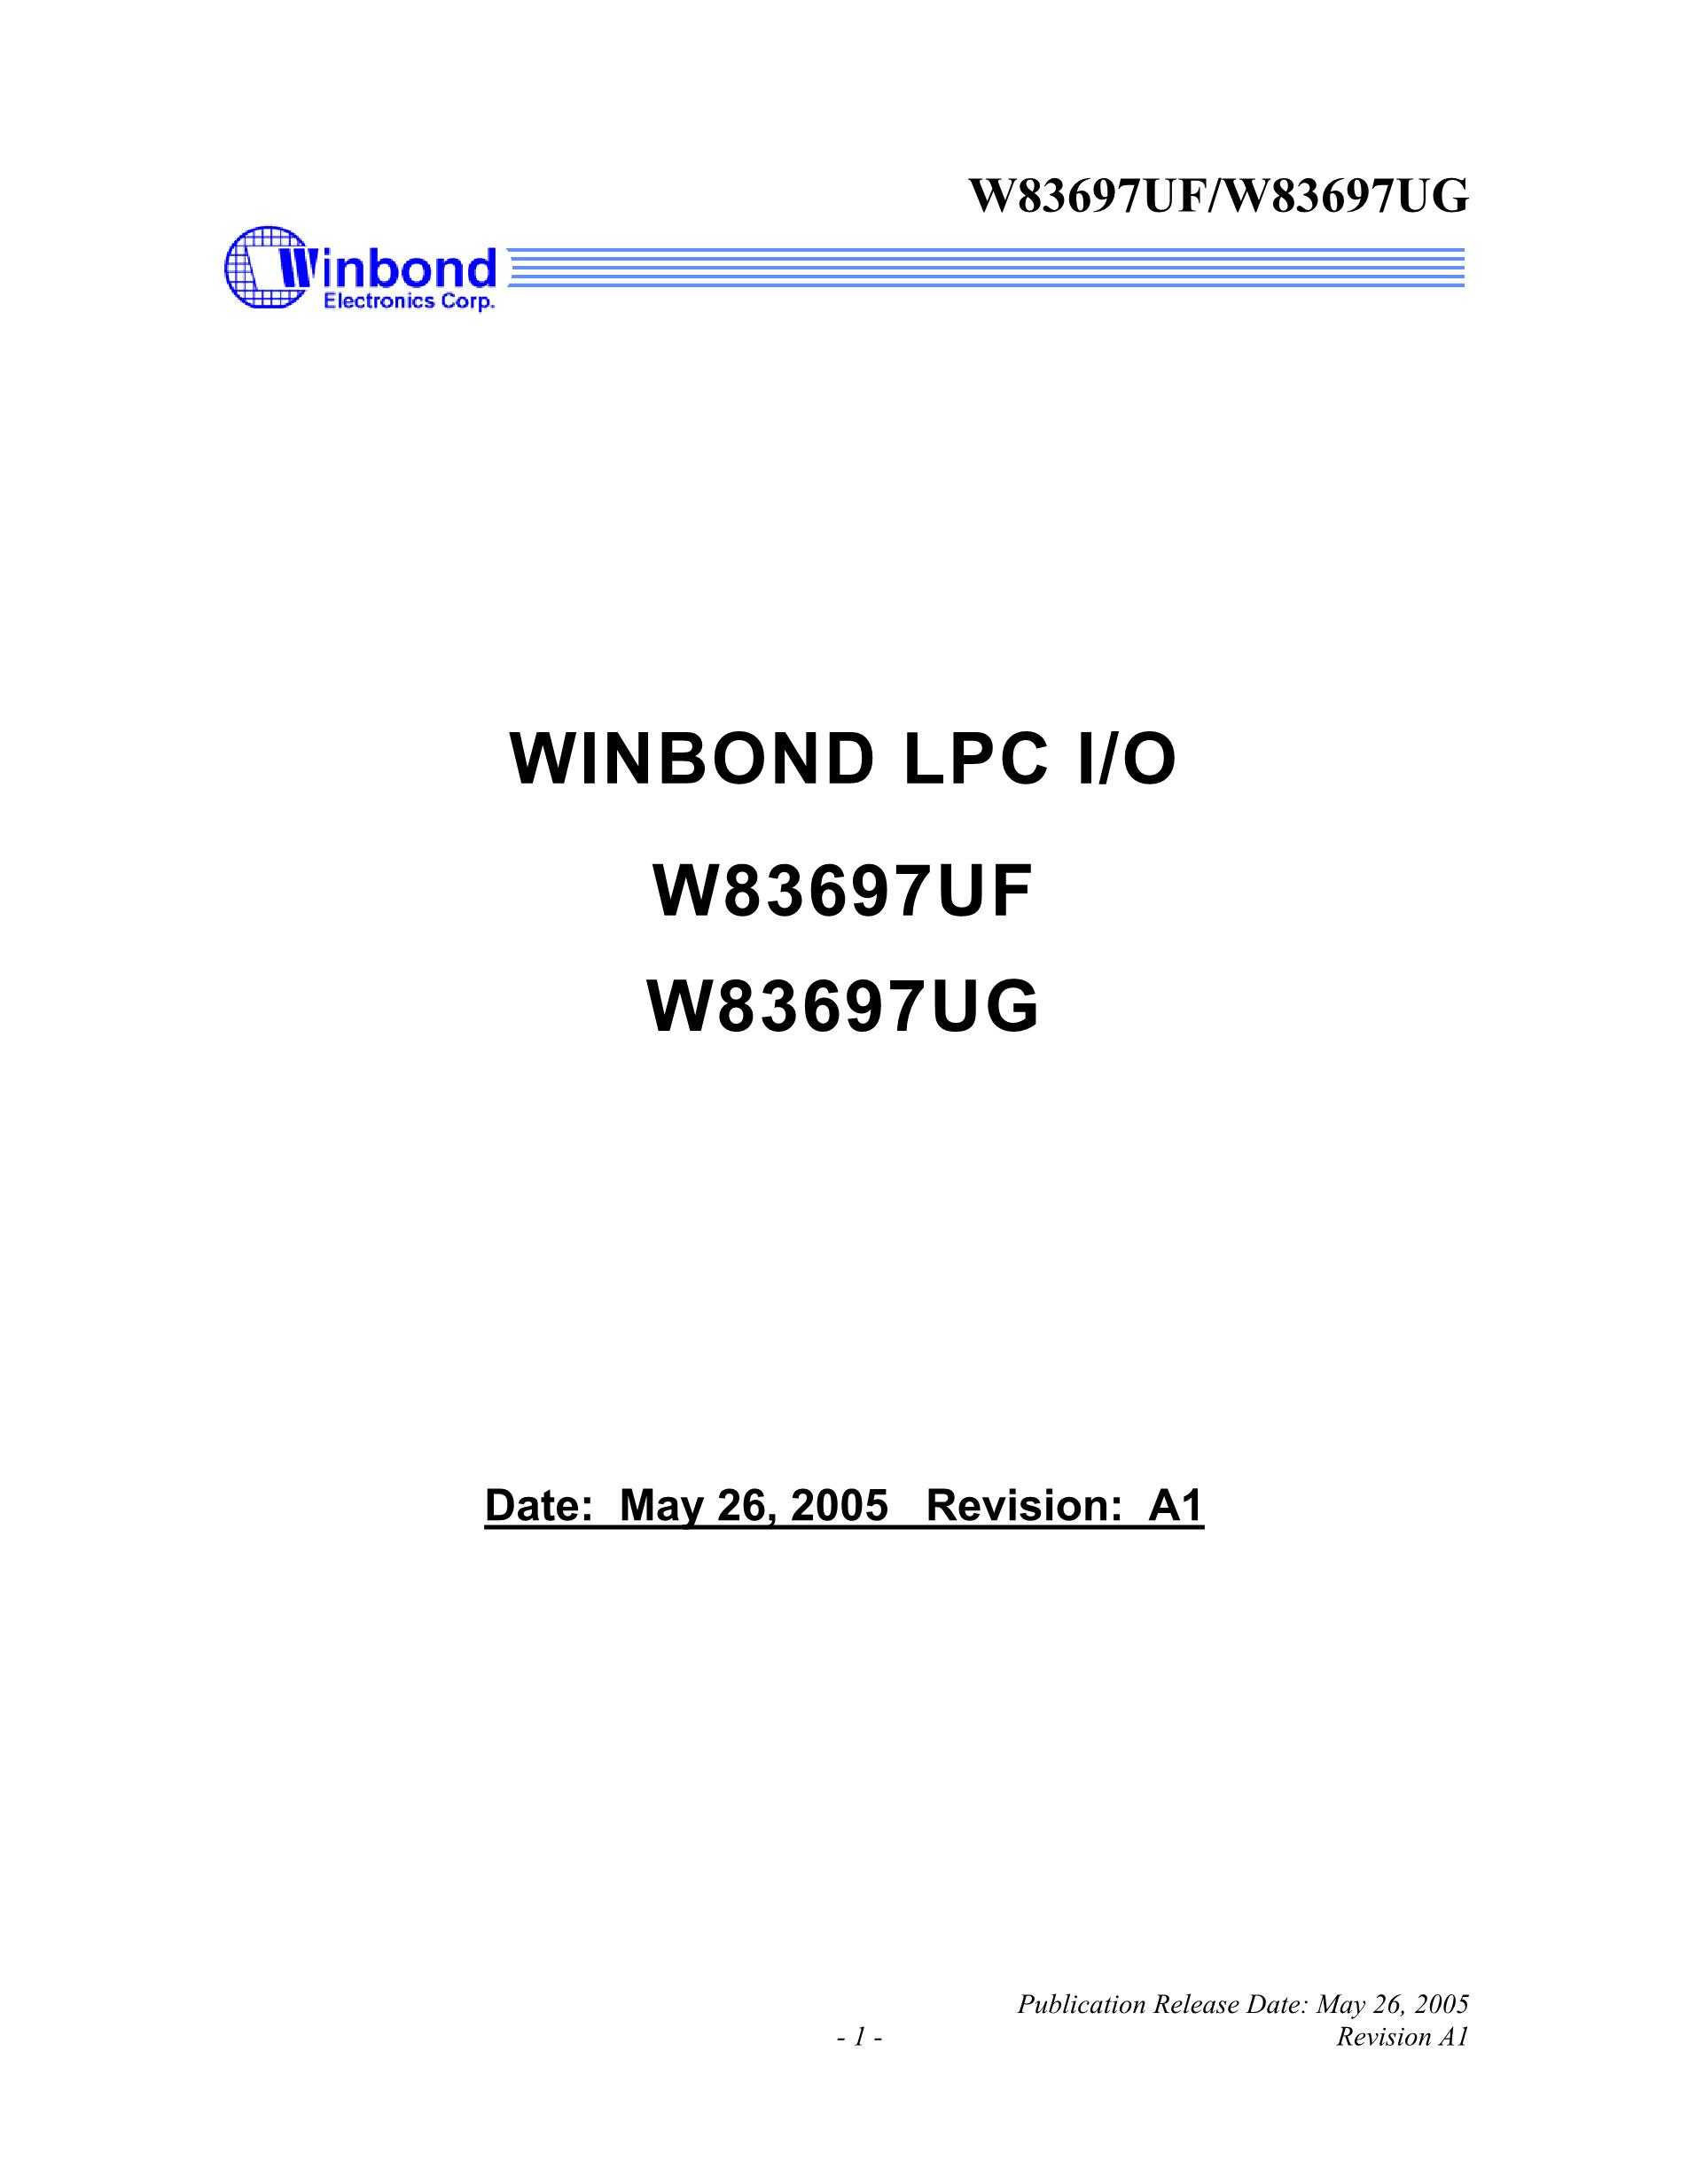 W83637HG-AW's pdf picture 1